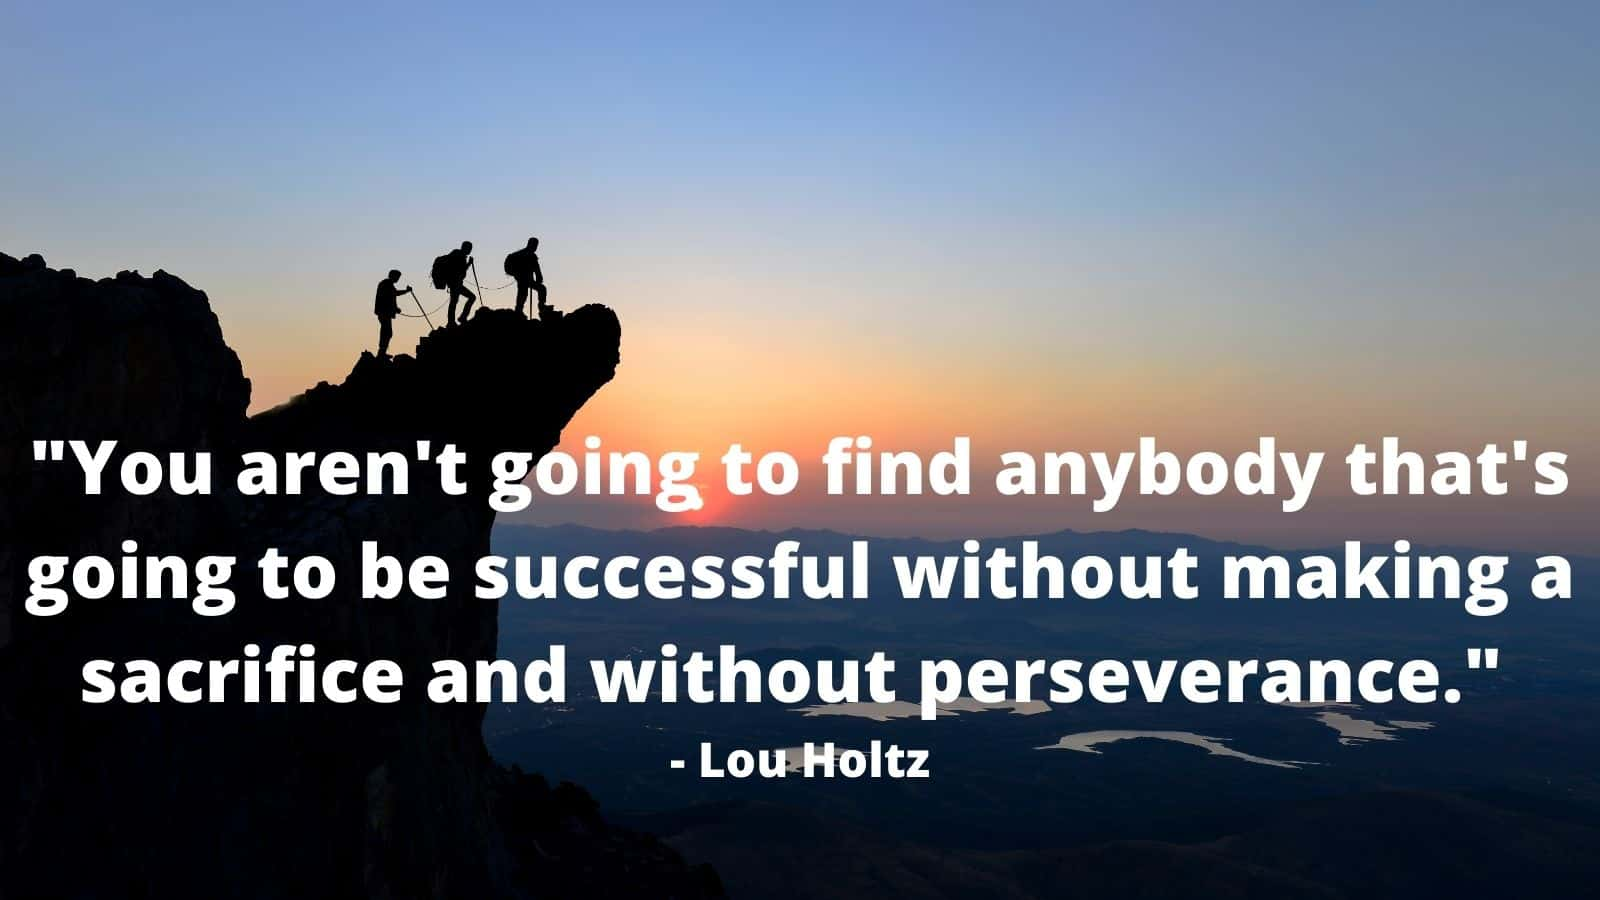 15 Quotes About Perseverance to Motivate Success